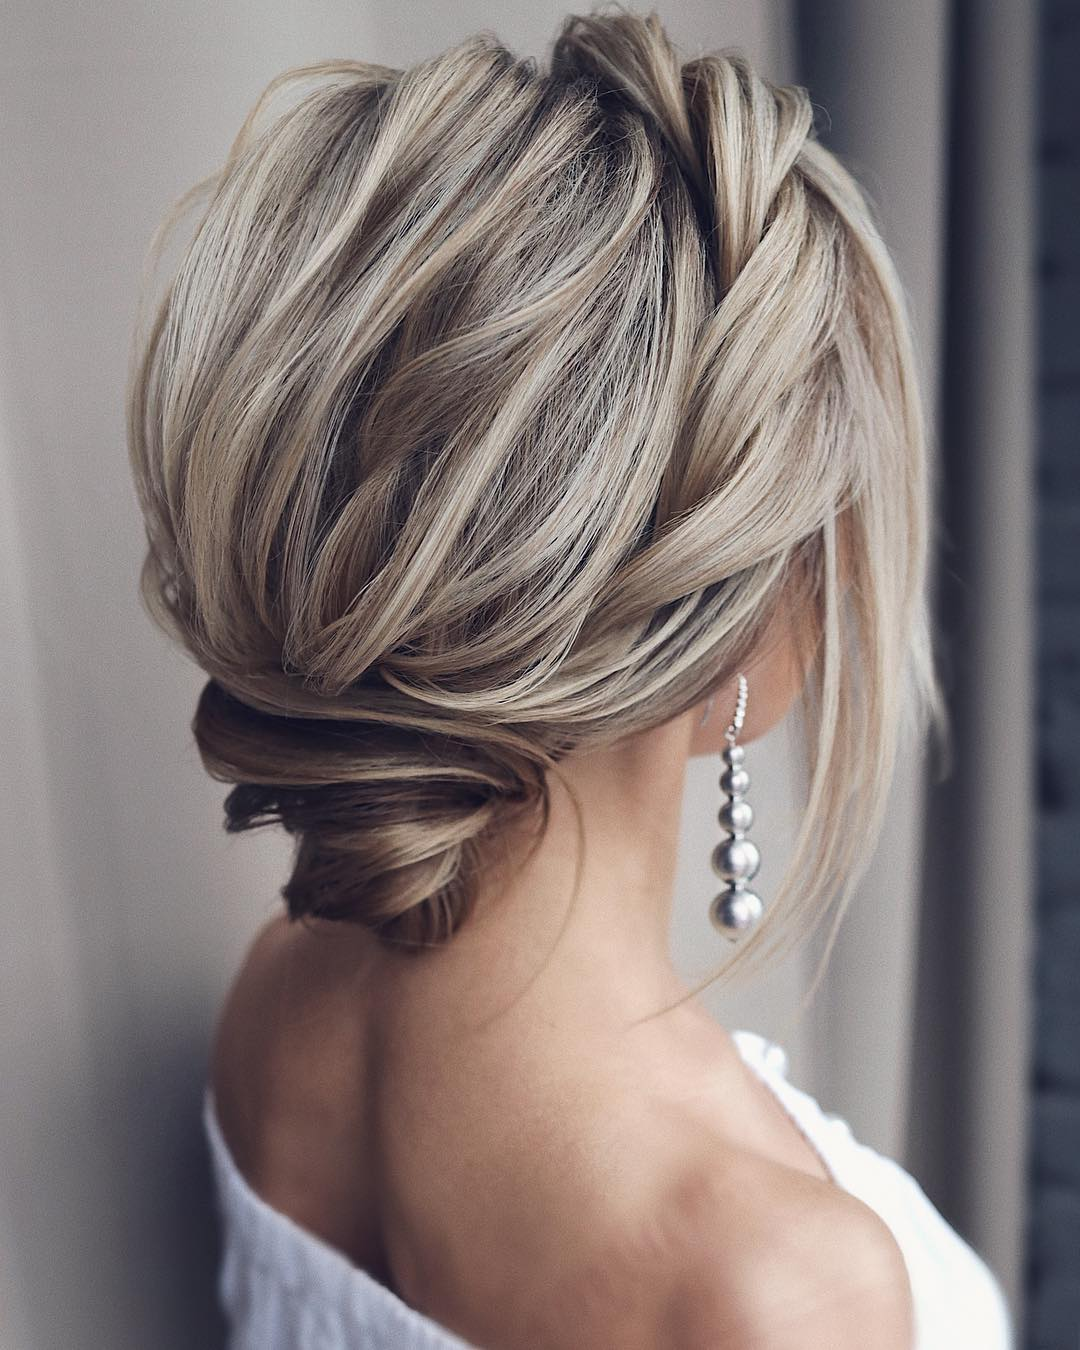 12 Updos for Medium Length Hair - Prom & Homecoming Hairstyle